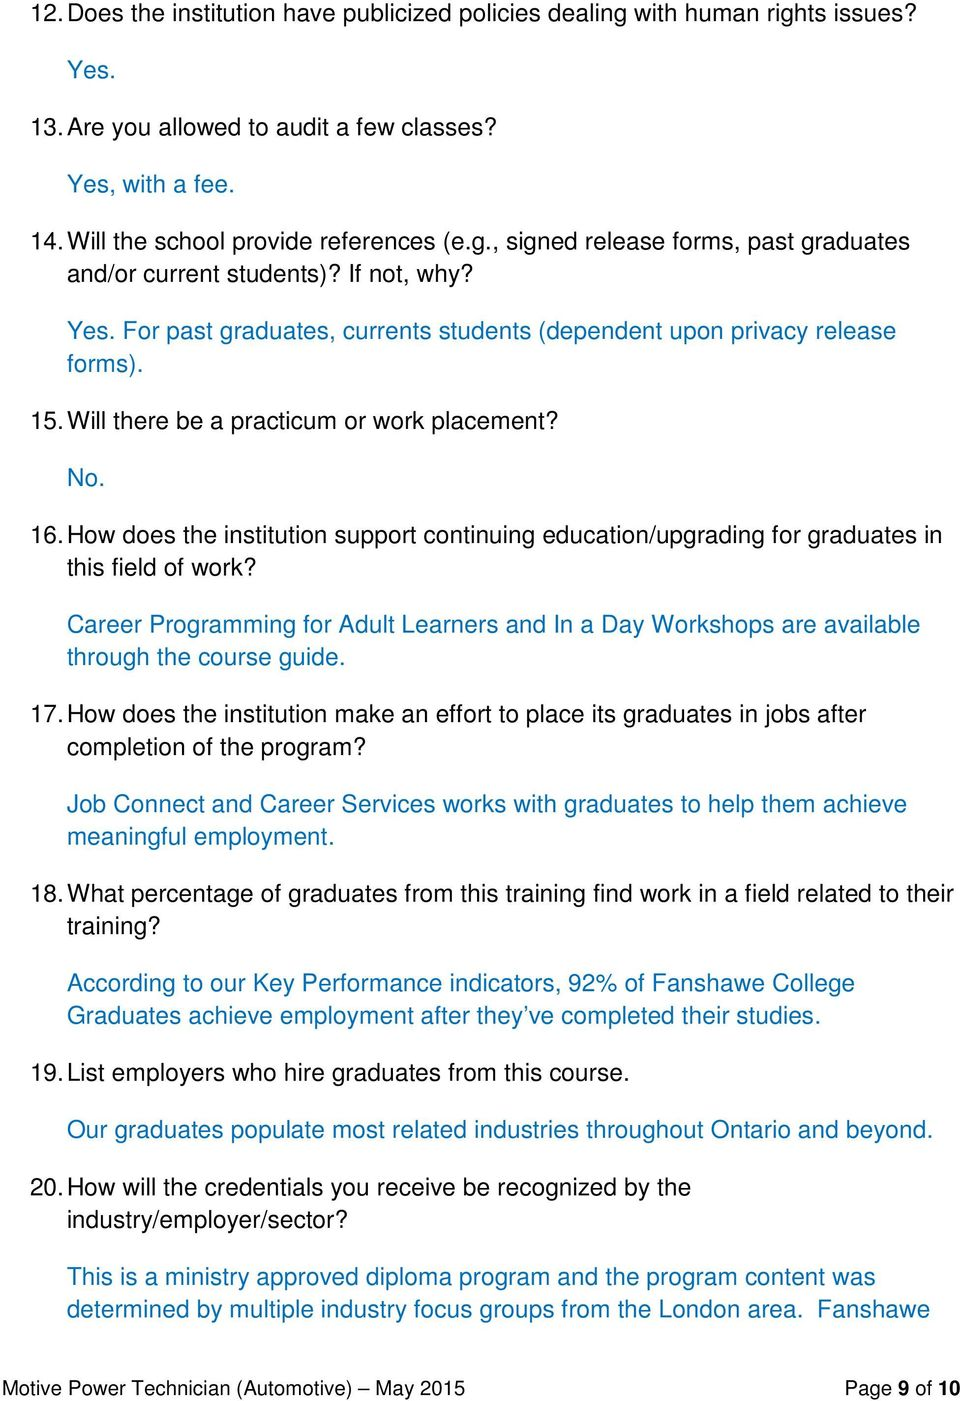 How does the institution support continuing education/upgrading for graduates in this field of work?